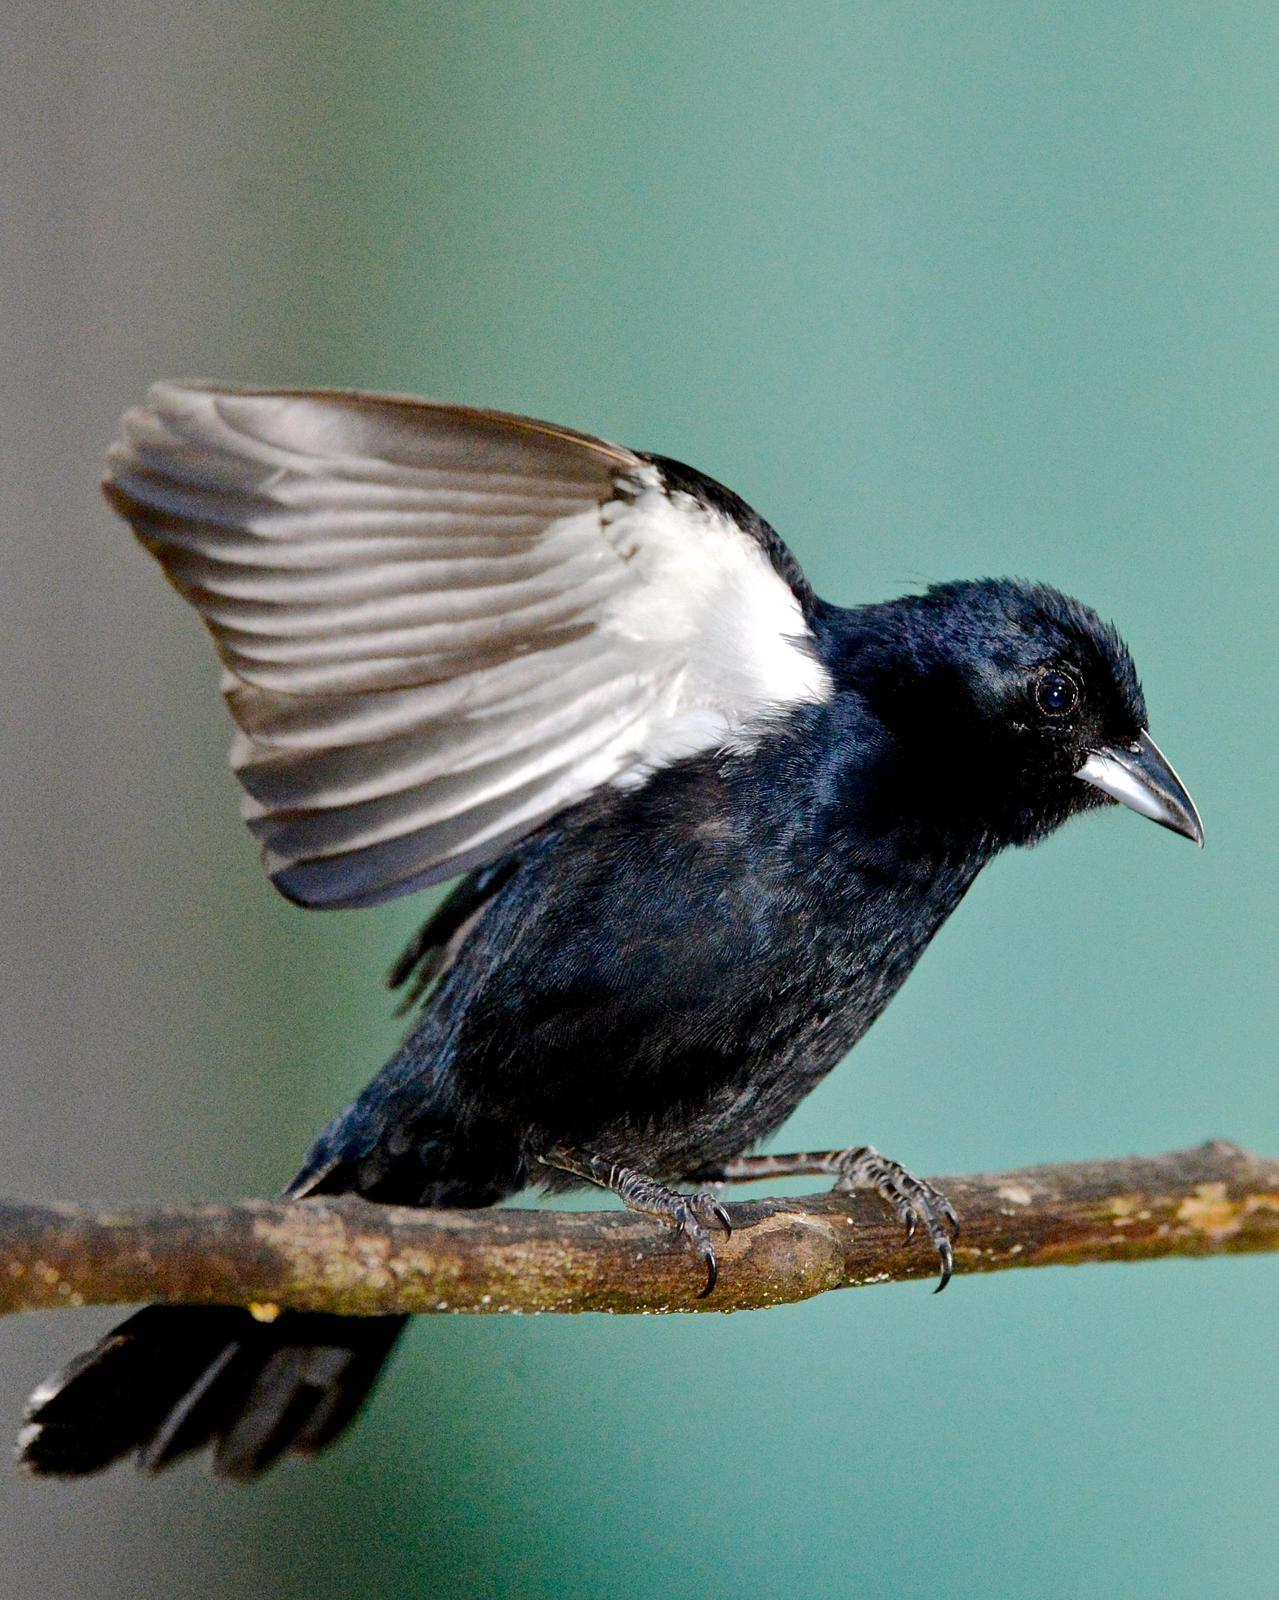 White-lined Tanager Photo by Gerald Friesen